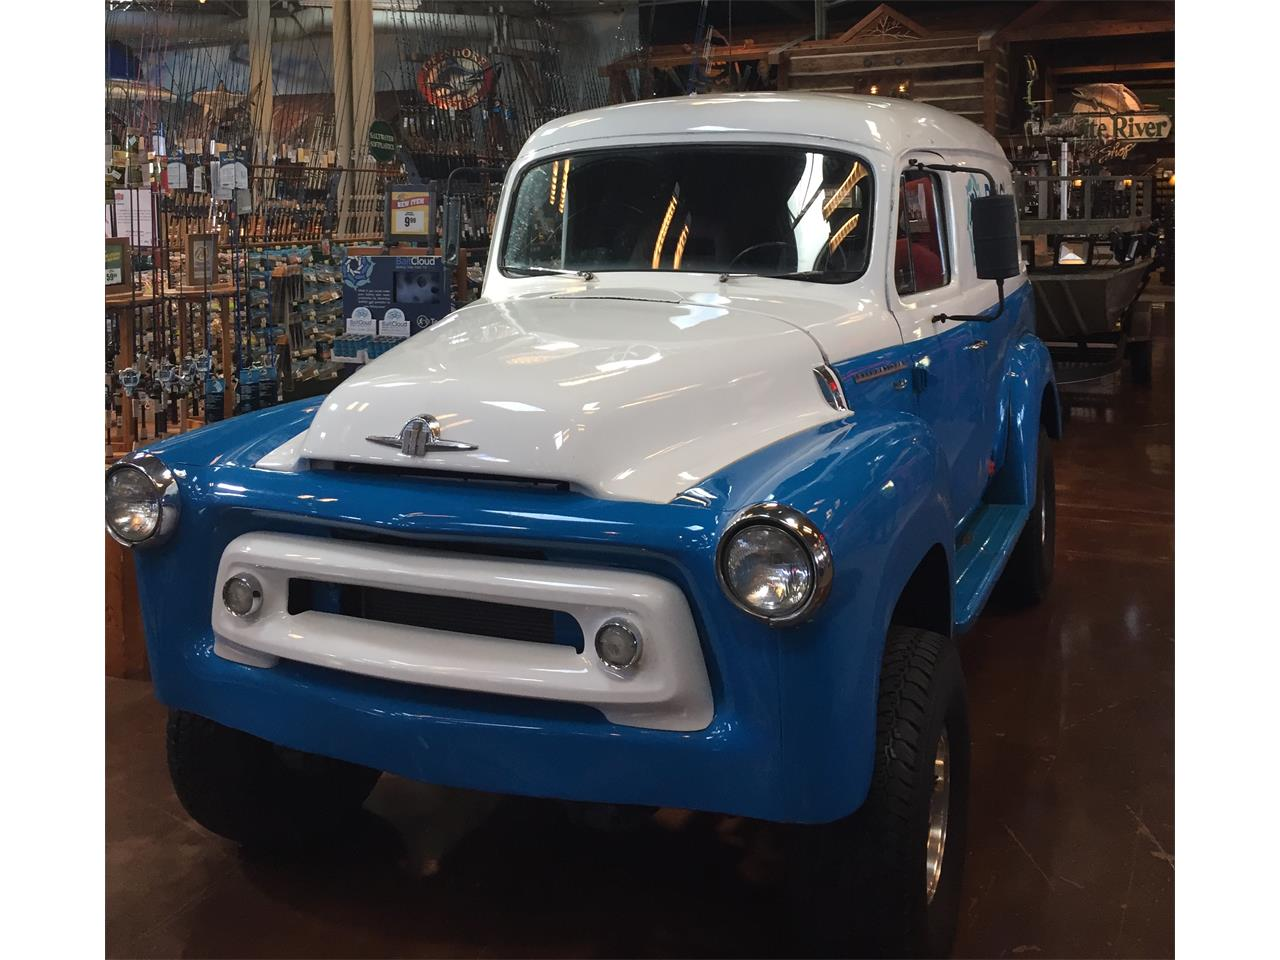 Large Picture of '56 International Harvester Scout II - $29,000.00 Offered by a Private Seller - LUC8